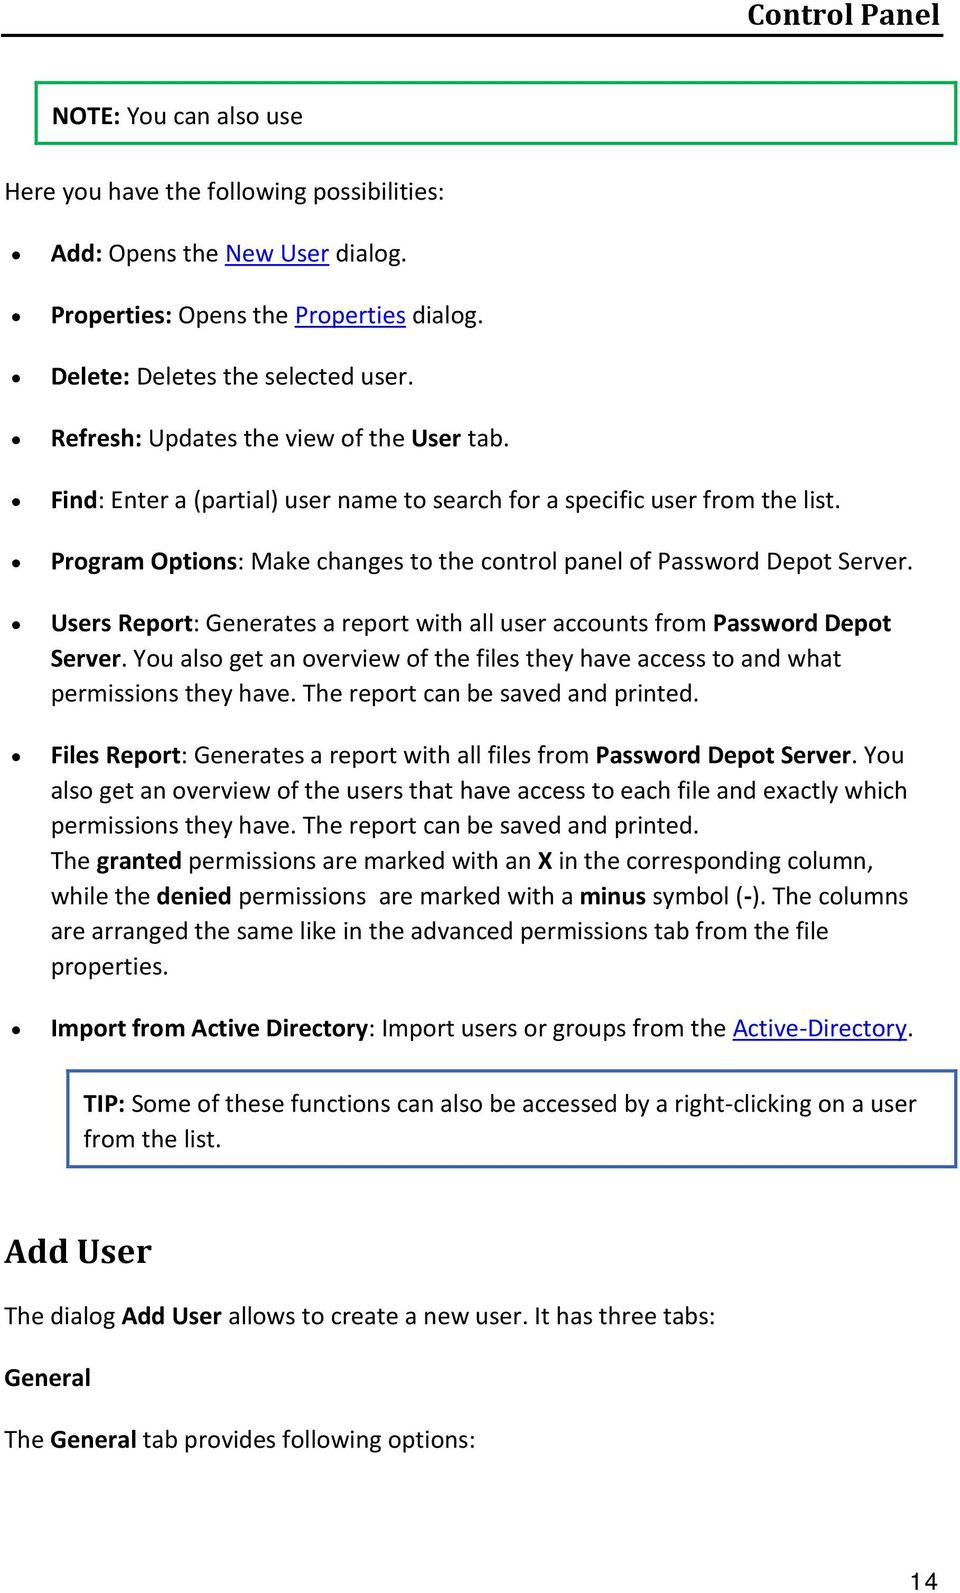 Users Report: Generates a report with all user accounts from Password Depot Server. You also get an overview of the files they have access to and what permissions they have.